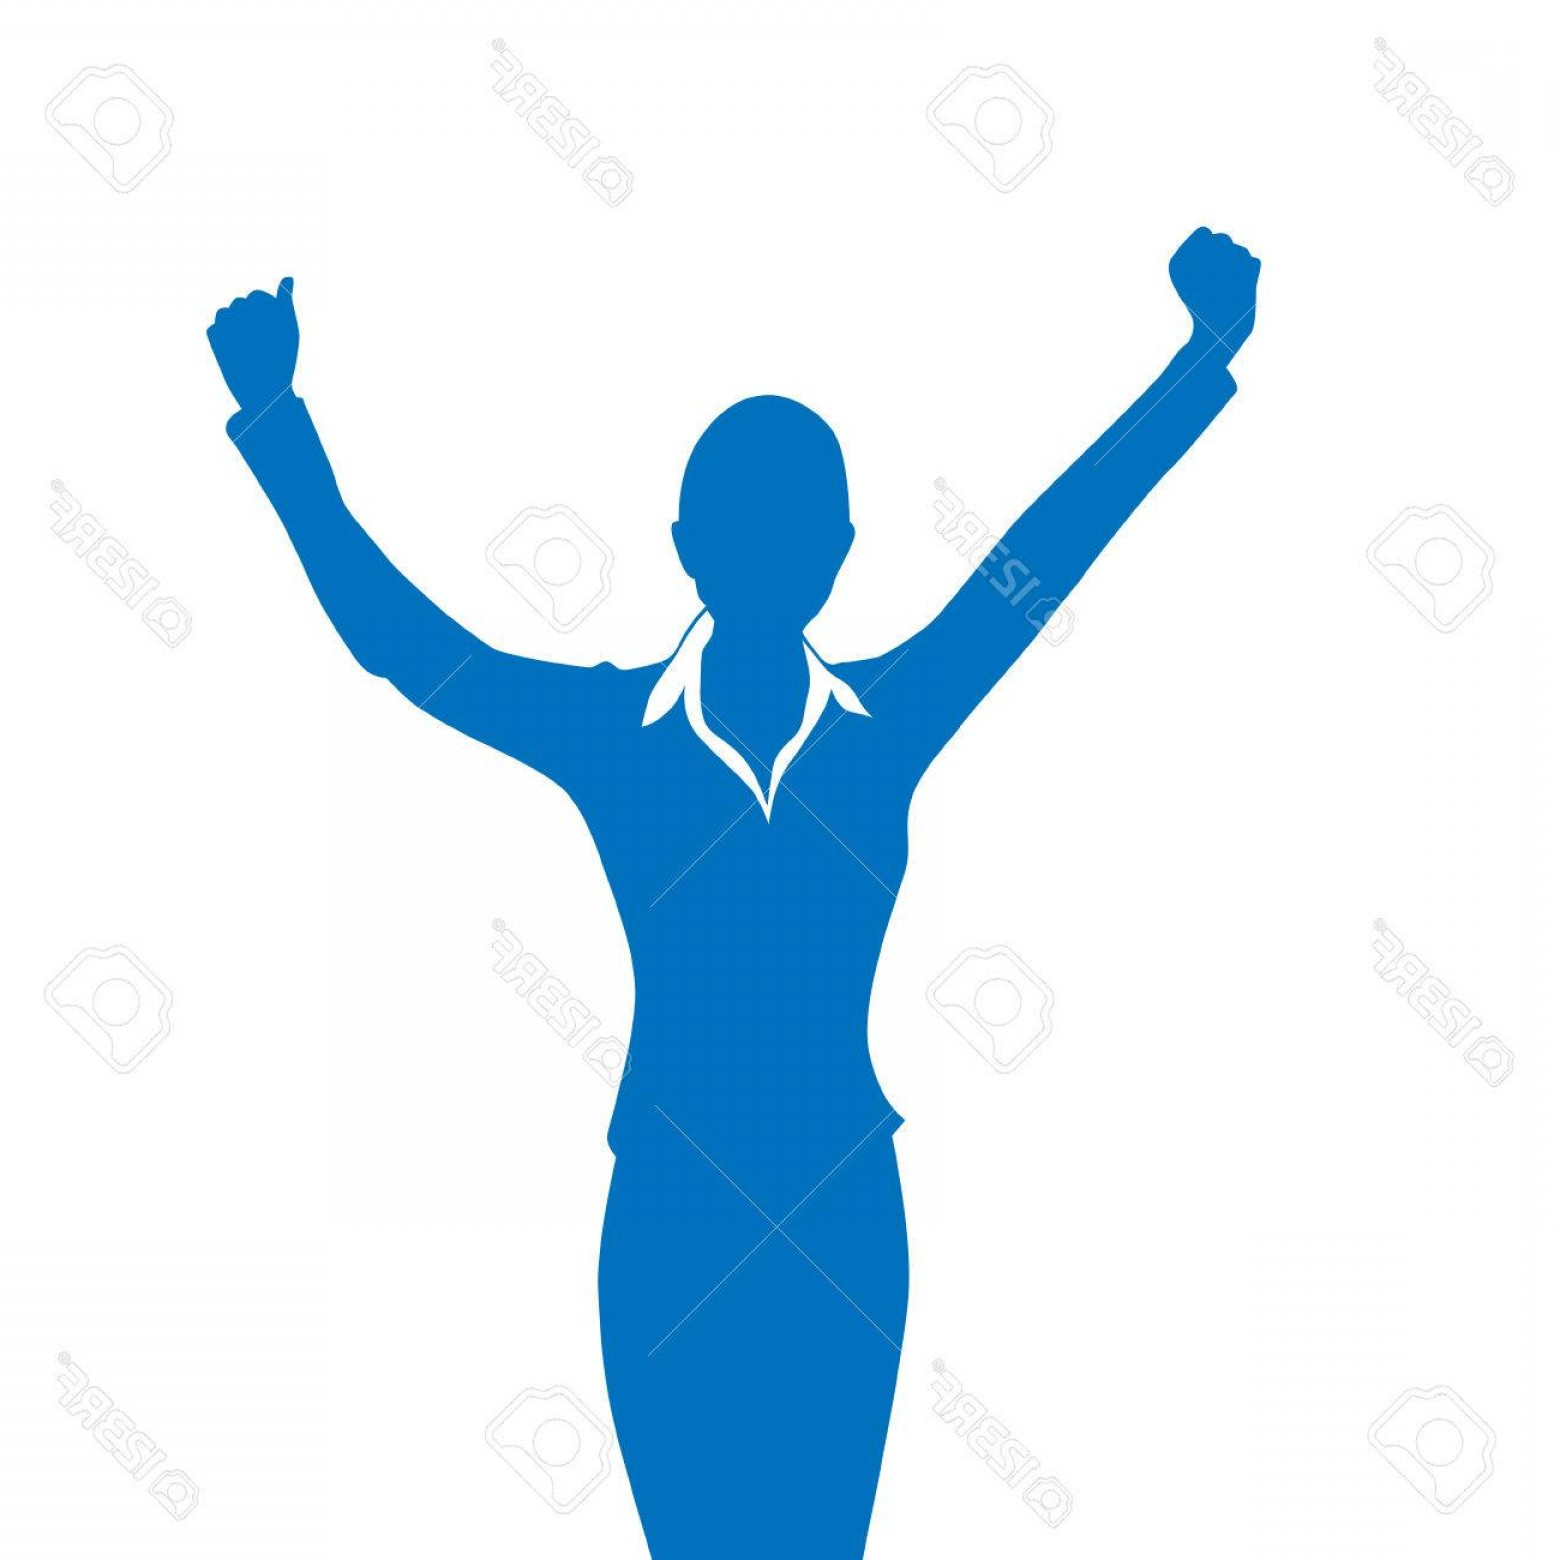 Holding Hands Up Silhouette Vector: Photostock Vector Business Woman Silhouette Excited Hold Hands Up Raised Arms